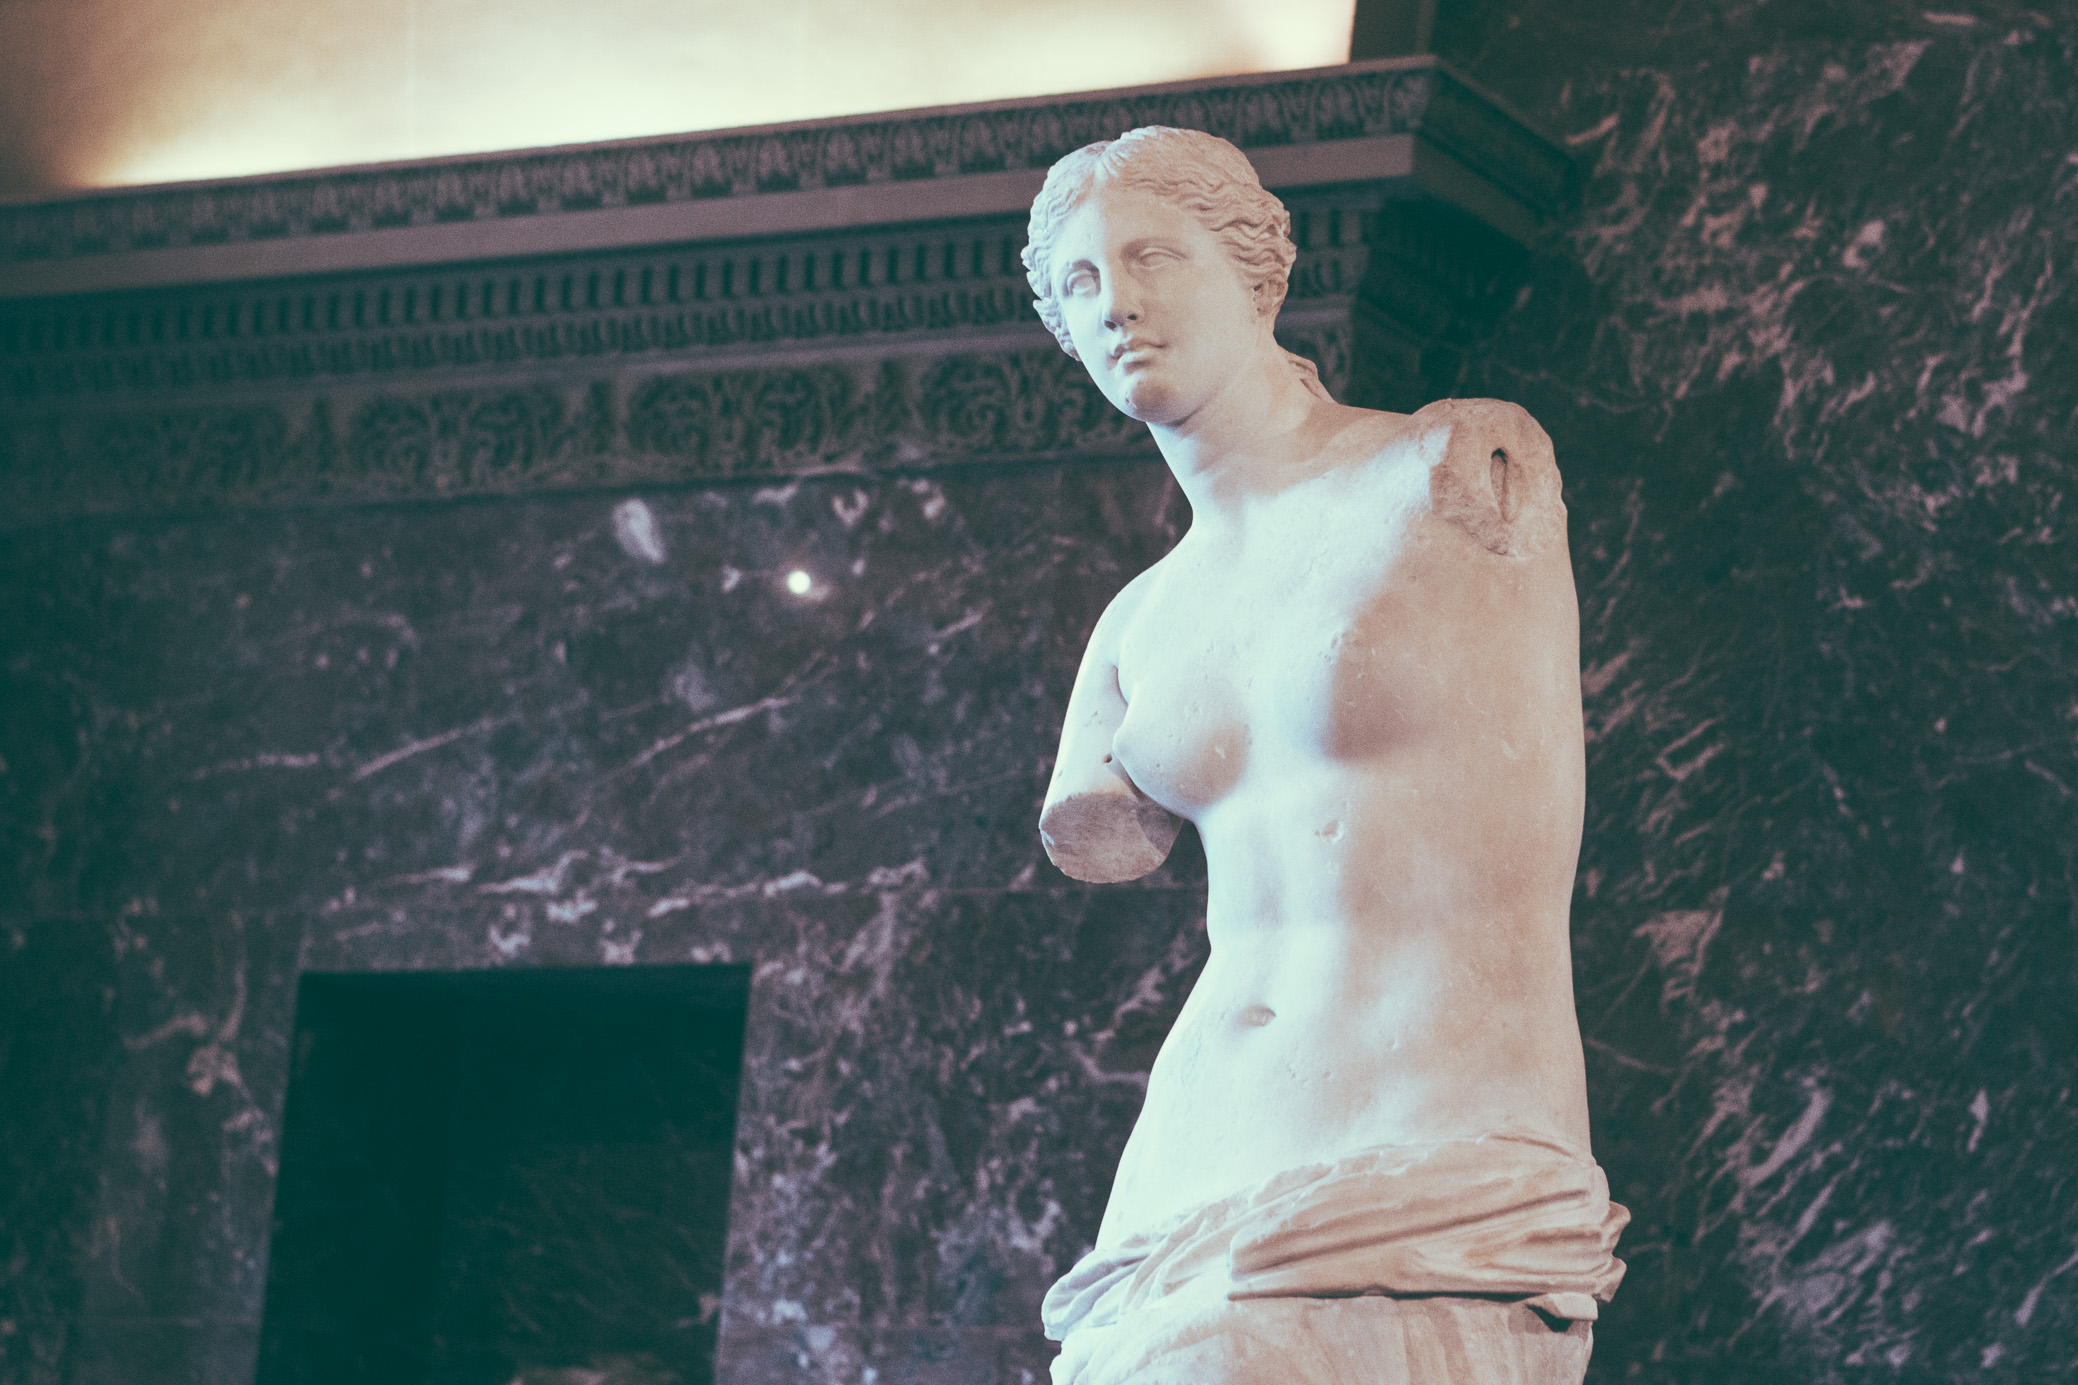 The Venus de Milo| The Louvre | Paris, France | December 9th, 2018 | (Photo by David A. Smith / DSmithScenes)